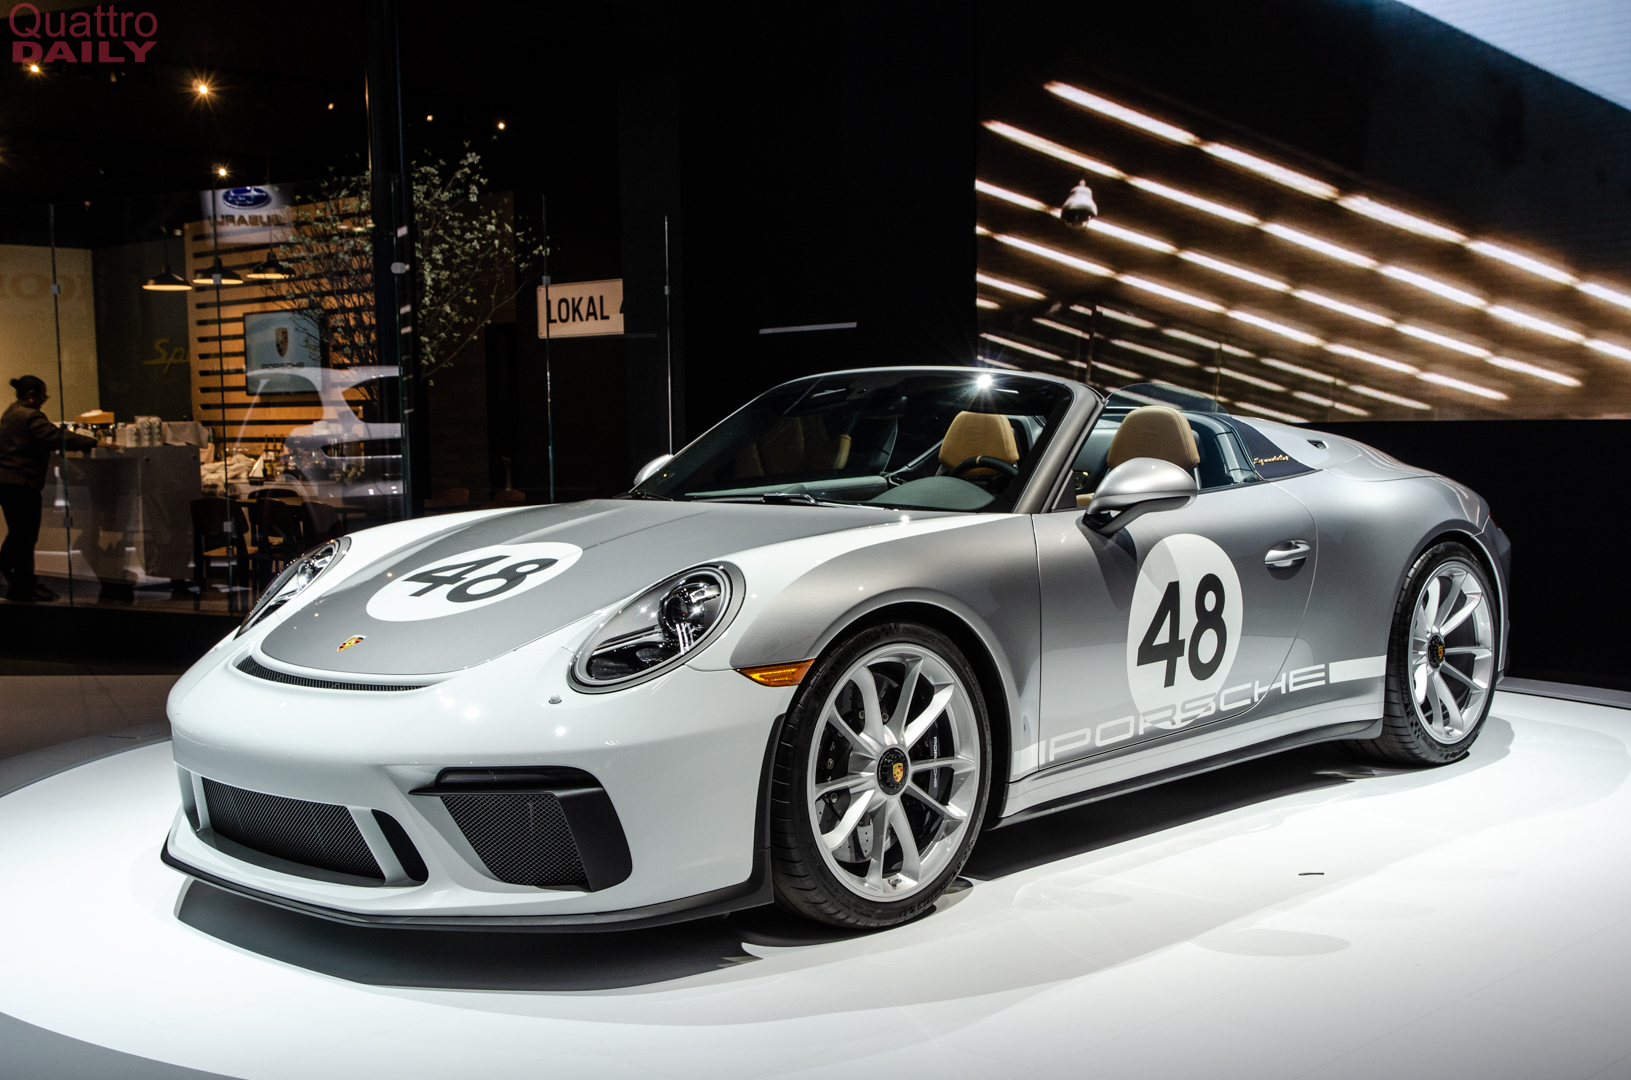 2019 NY Auto Show: Porsche 911 Speedster wows the crowd in New York